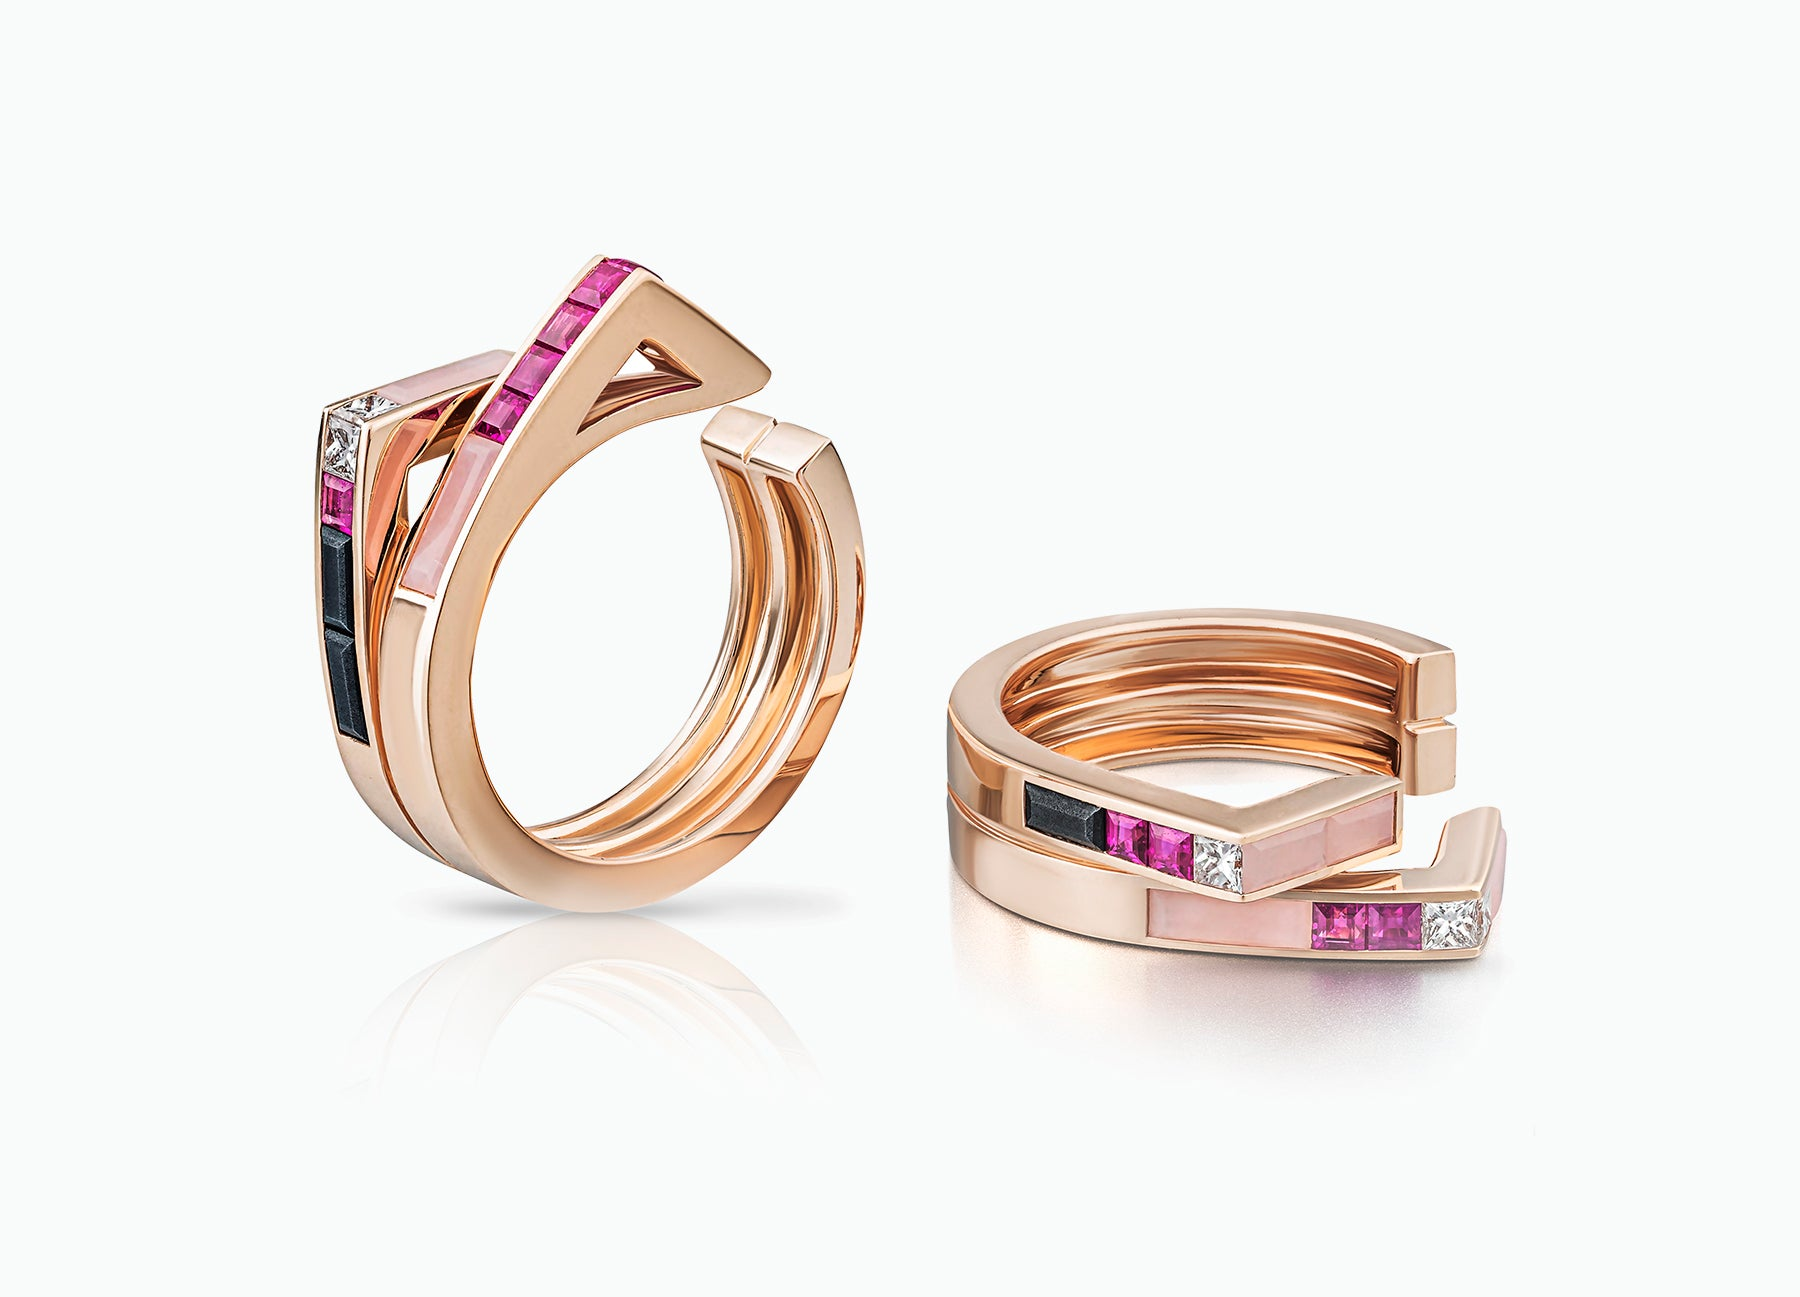 Stellar Pair of Stacking rings in 18K rose gold set with rubies and diamonds and pink opal by Tomasz Donocik Seen apart